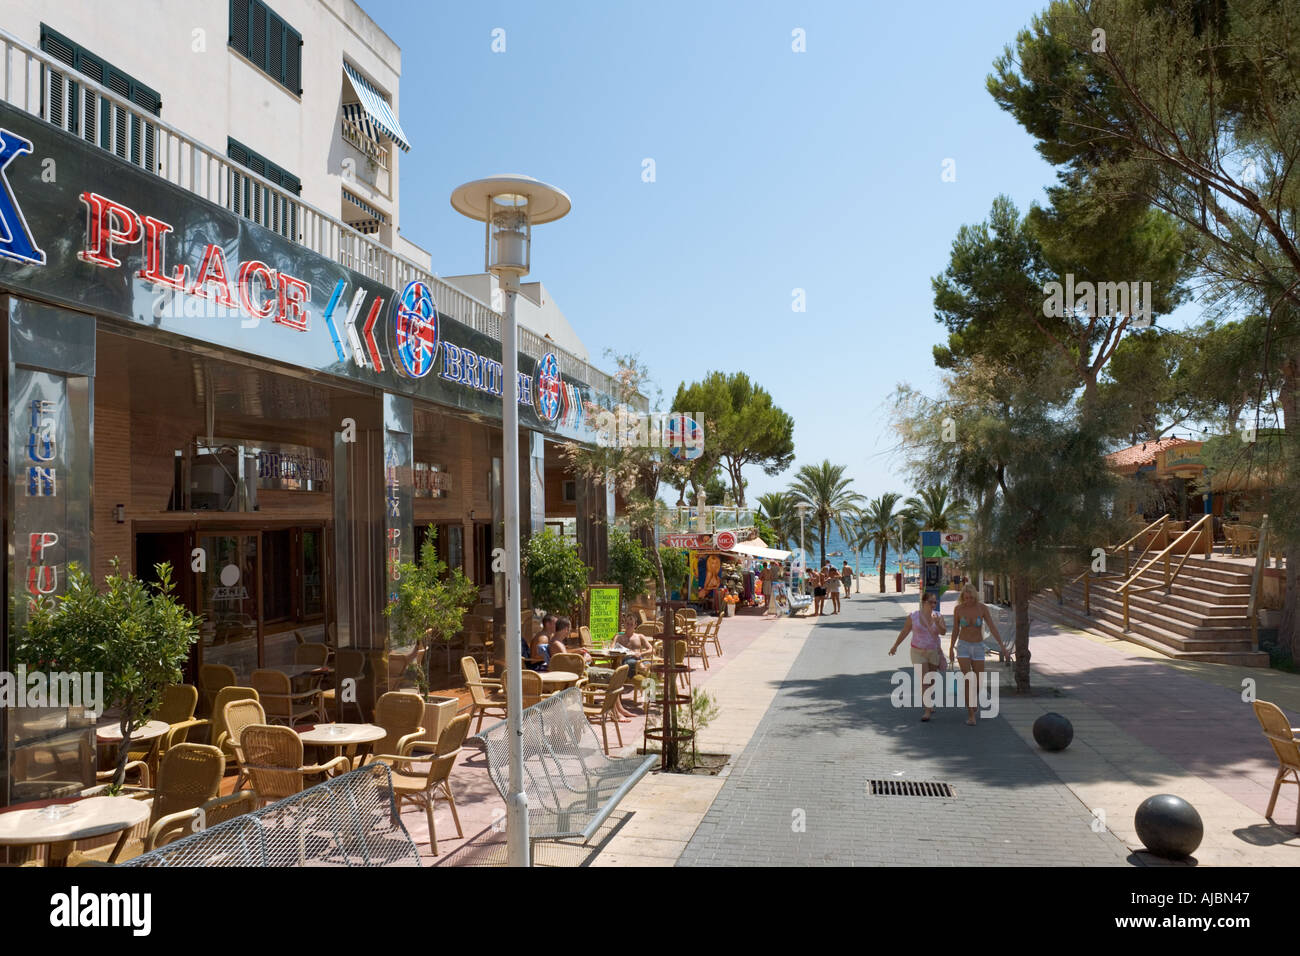 Bars and Cafes on the path down to the beach, Magaluf, Bay of Palma, Mallorca, Balearic Islands, Spain - Stock Image